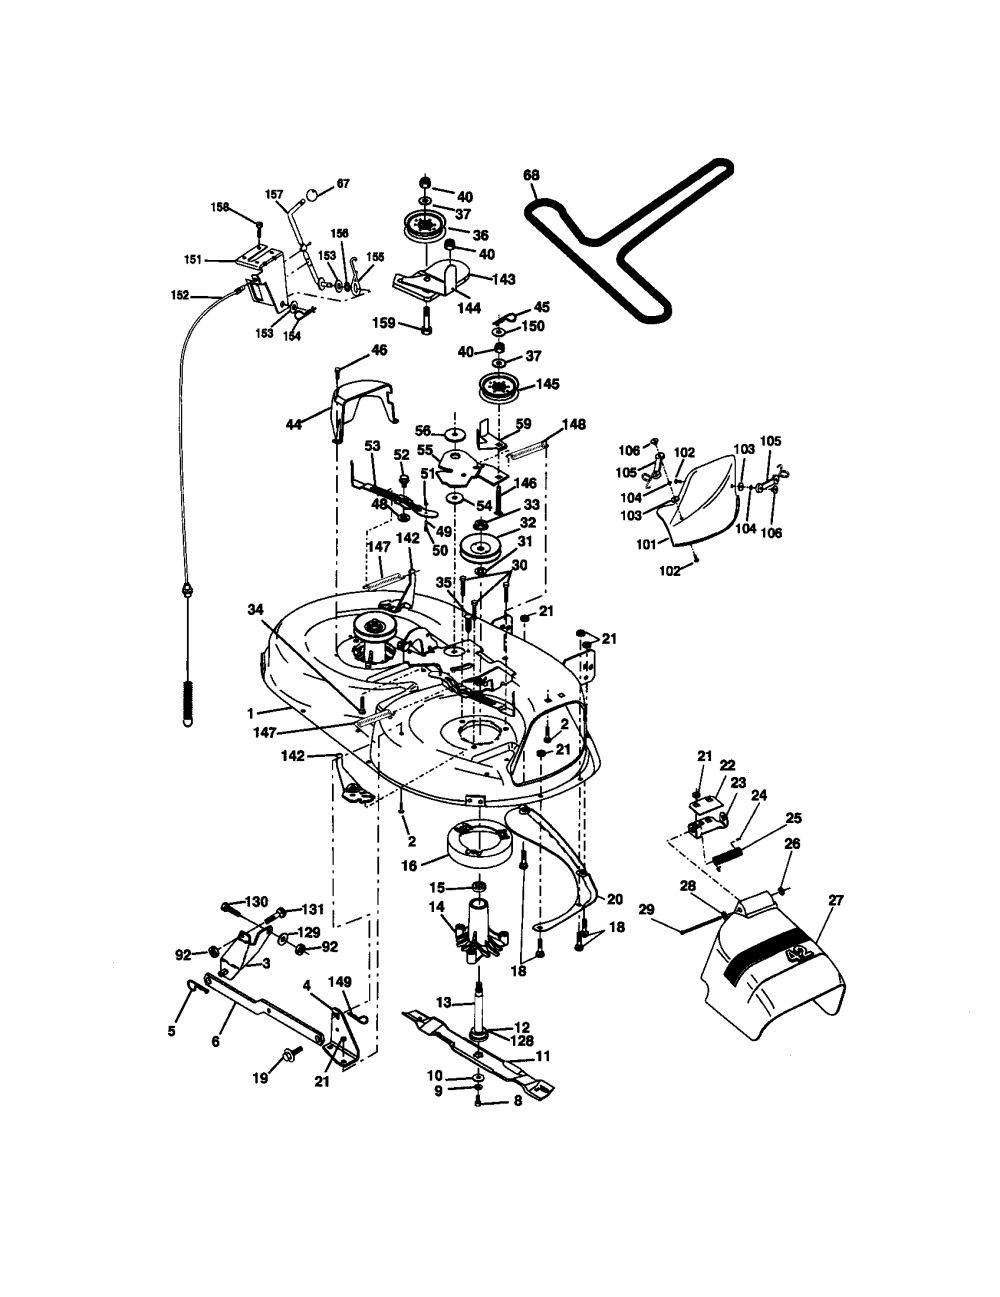 small resolution of  medium resolution of scott s1642 lawn mower wiring diagram free download